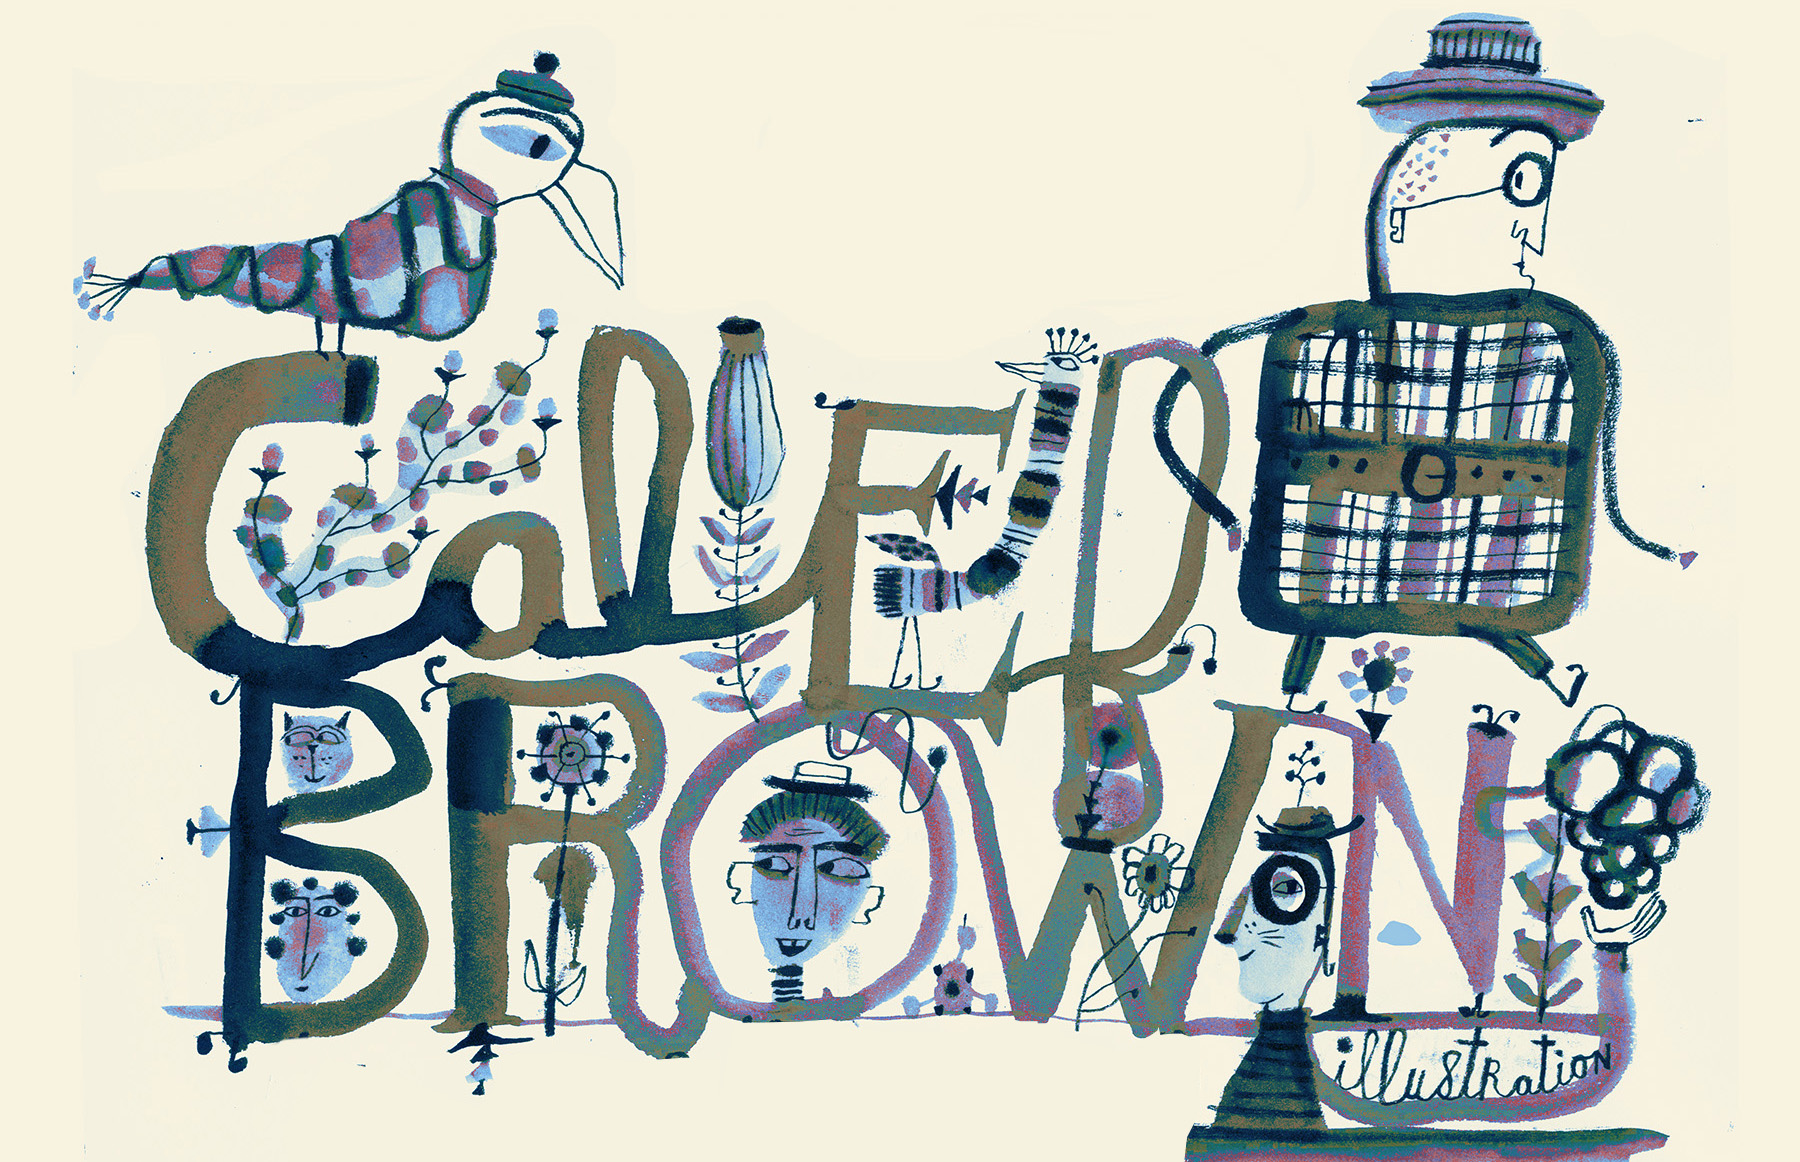 Calef Brown